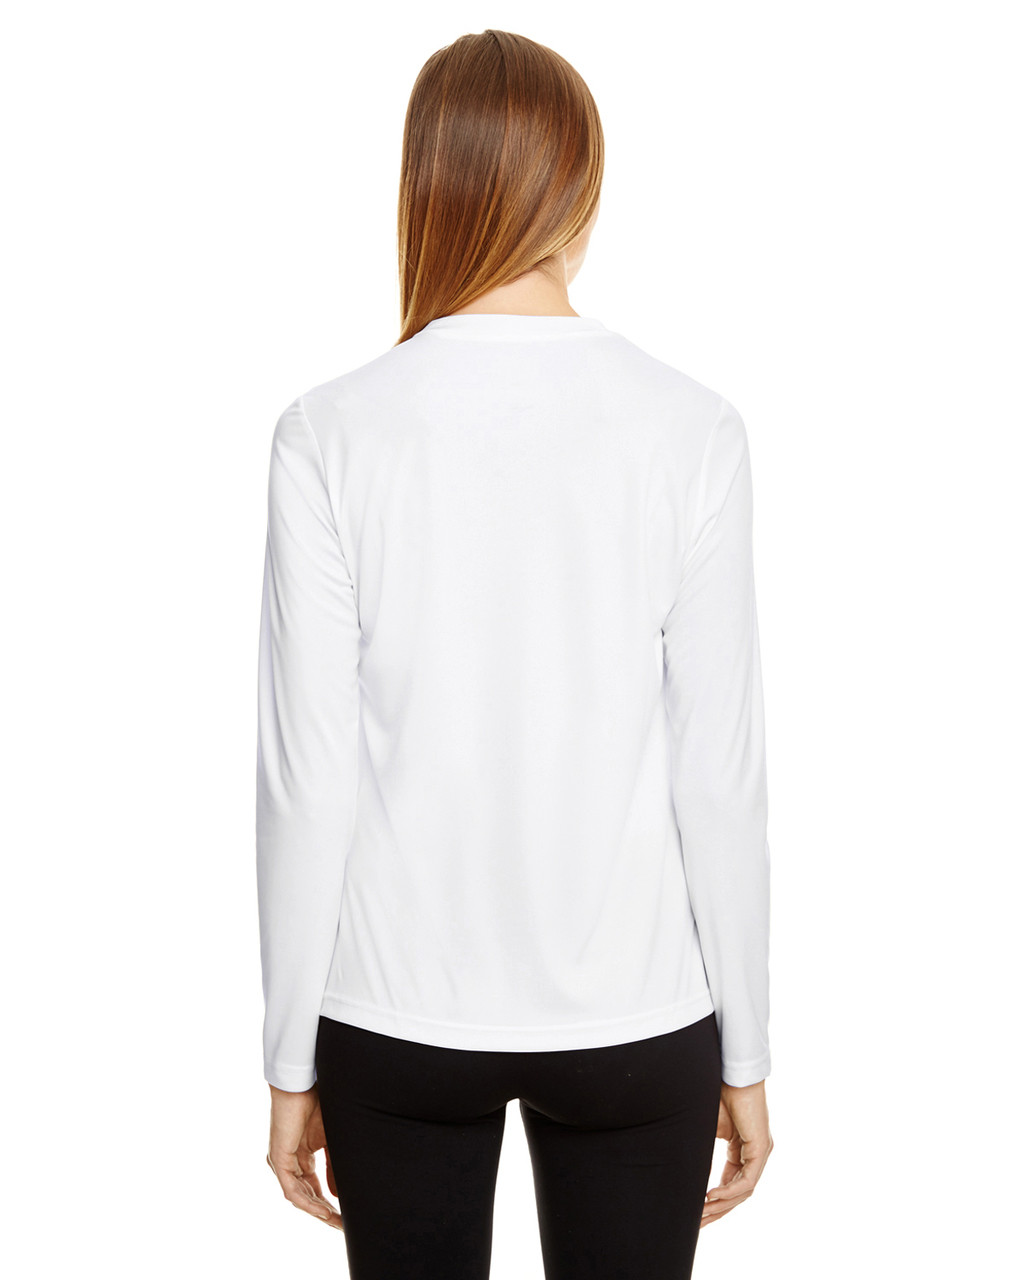 White - TT11WL Team 365 Ladies' Zone Performance Long-Sleeve T-Shirt